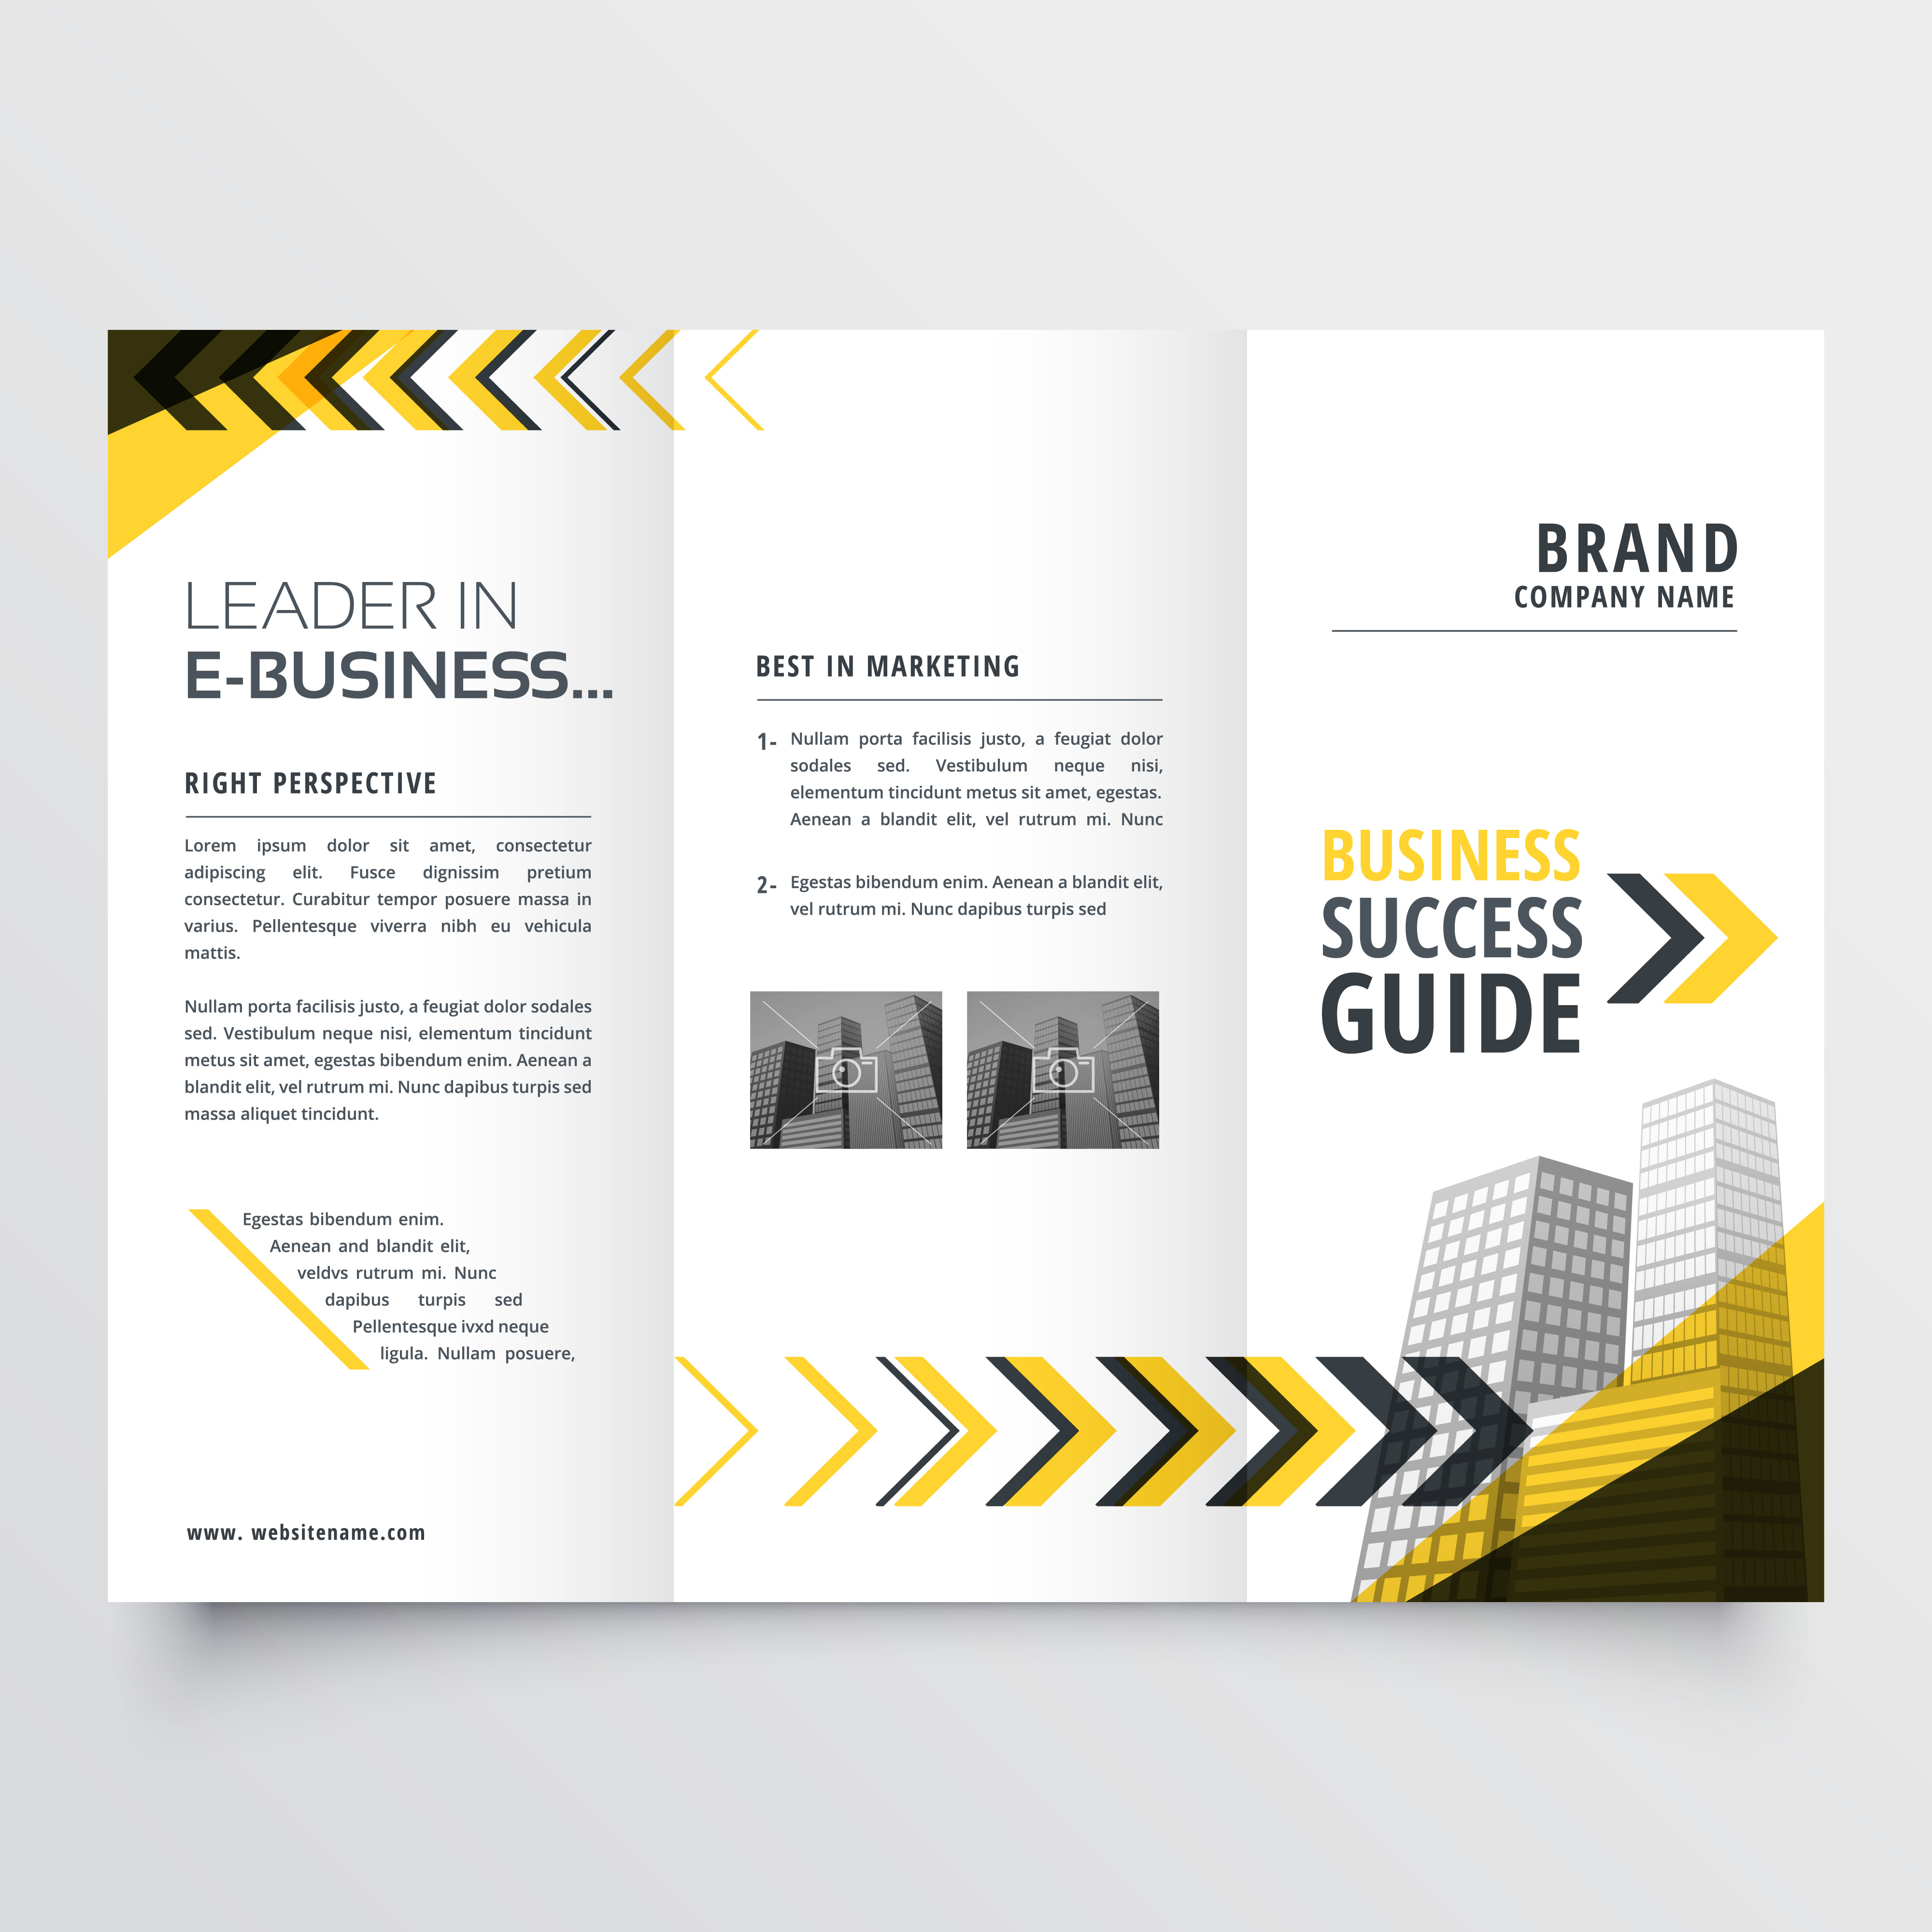 Awesome tri fold brochure design in yellow black shapes for Awesome tri fold brochure design